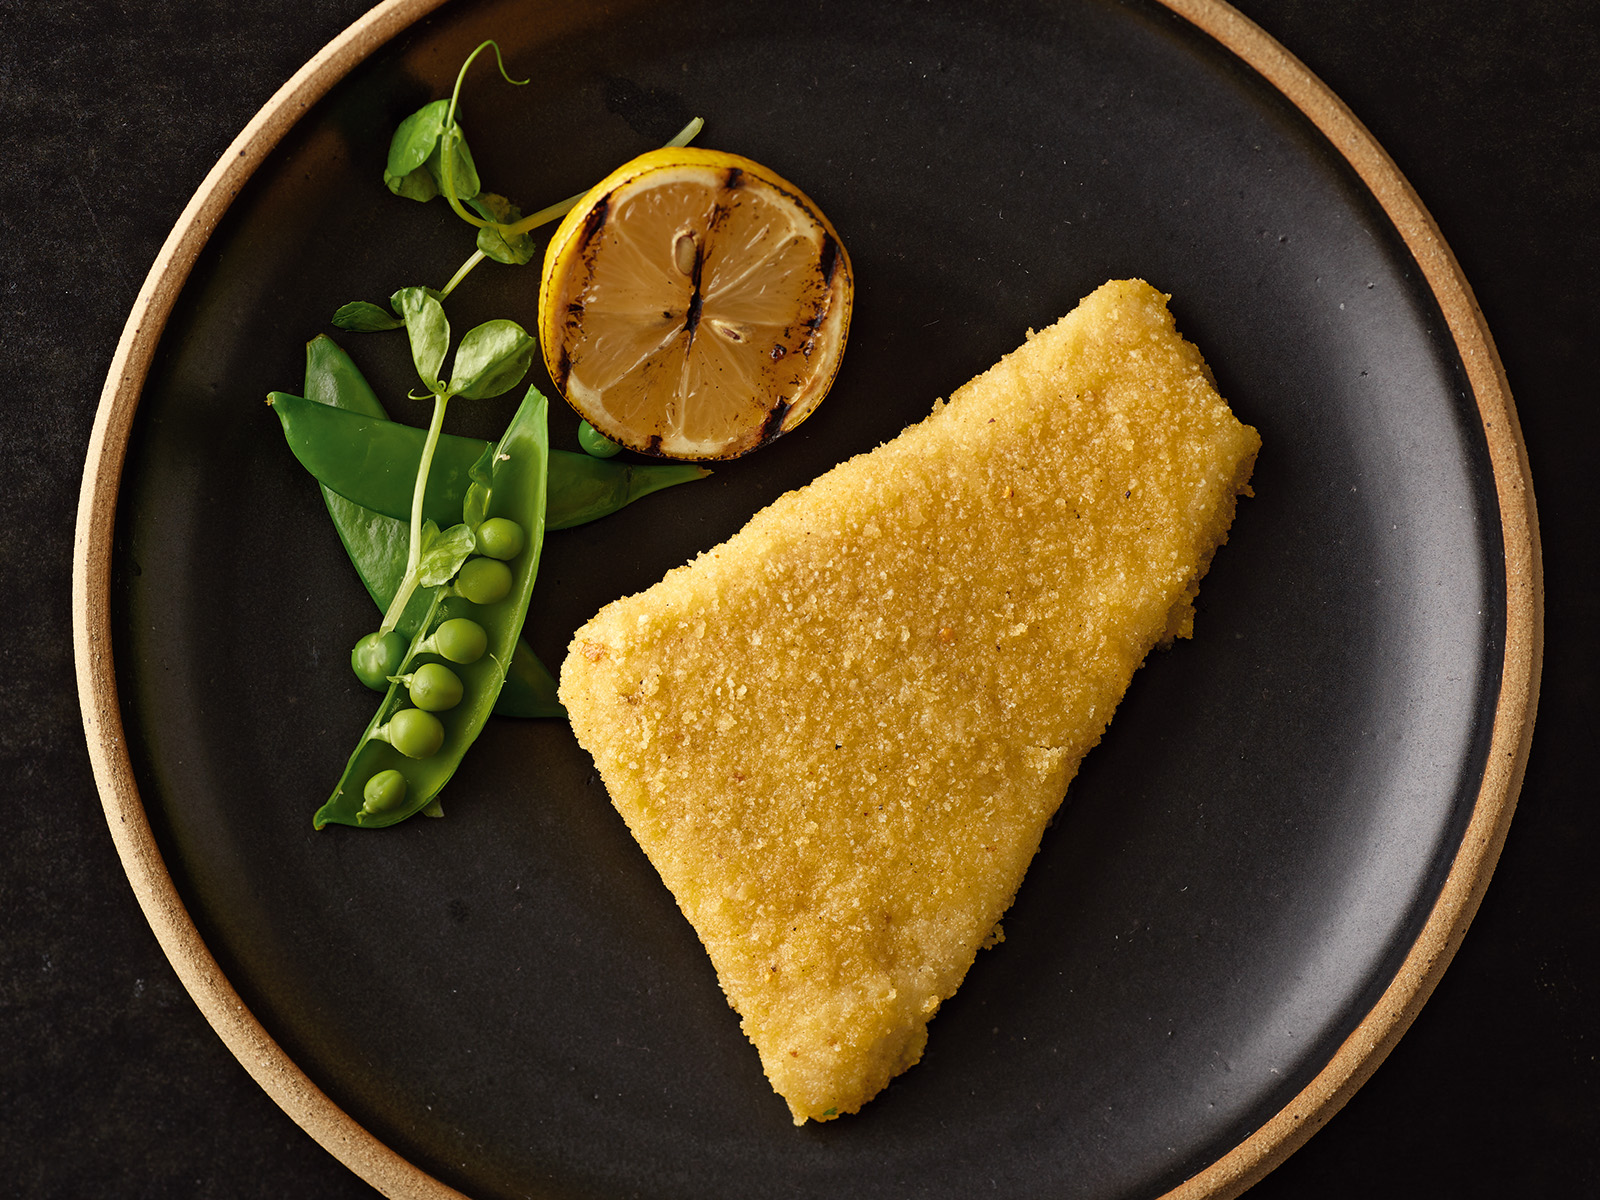 Lemon Butter Breaded Wild Alaska Pollock 4 oz Oven Ready 426075